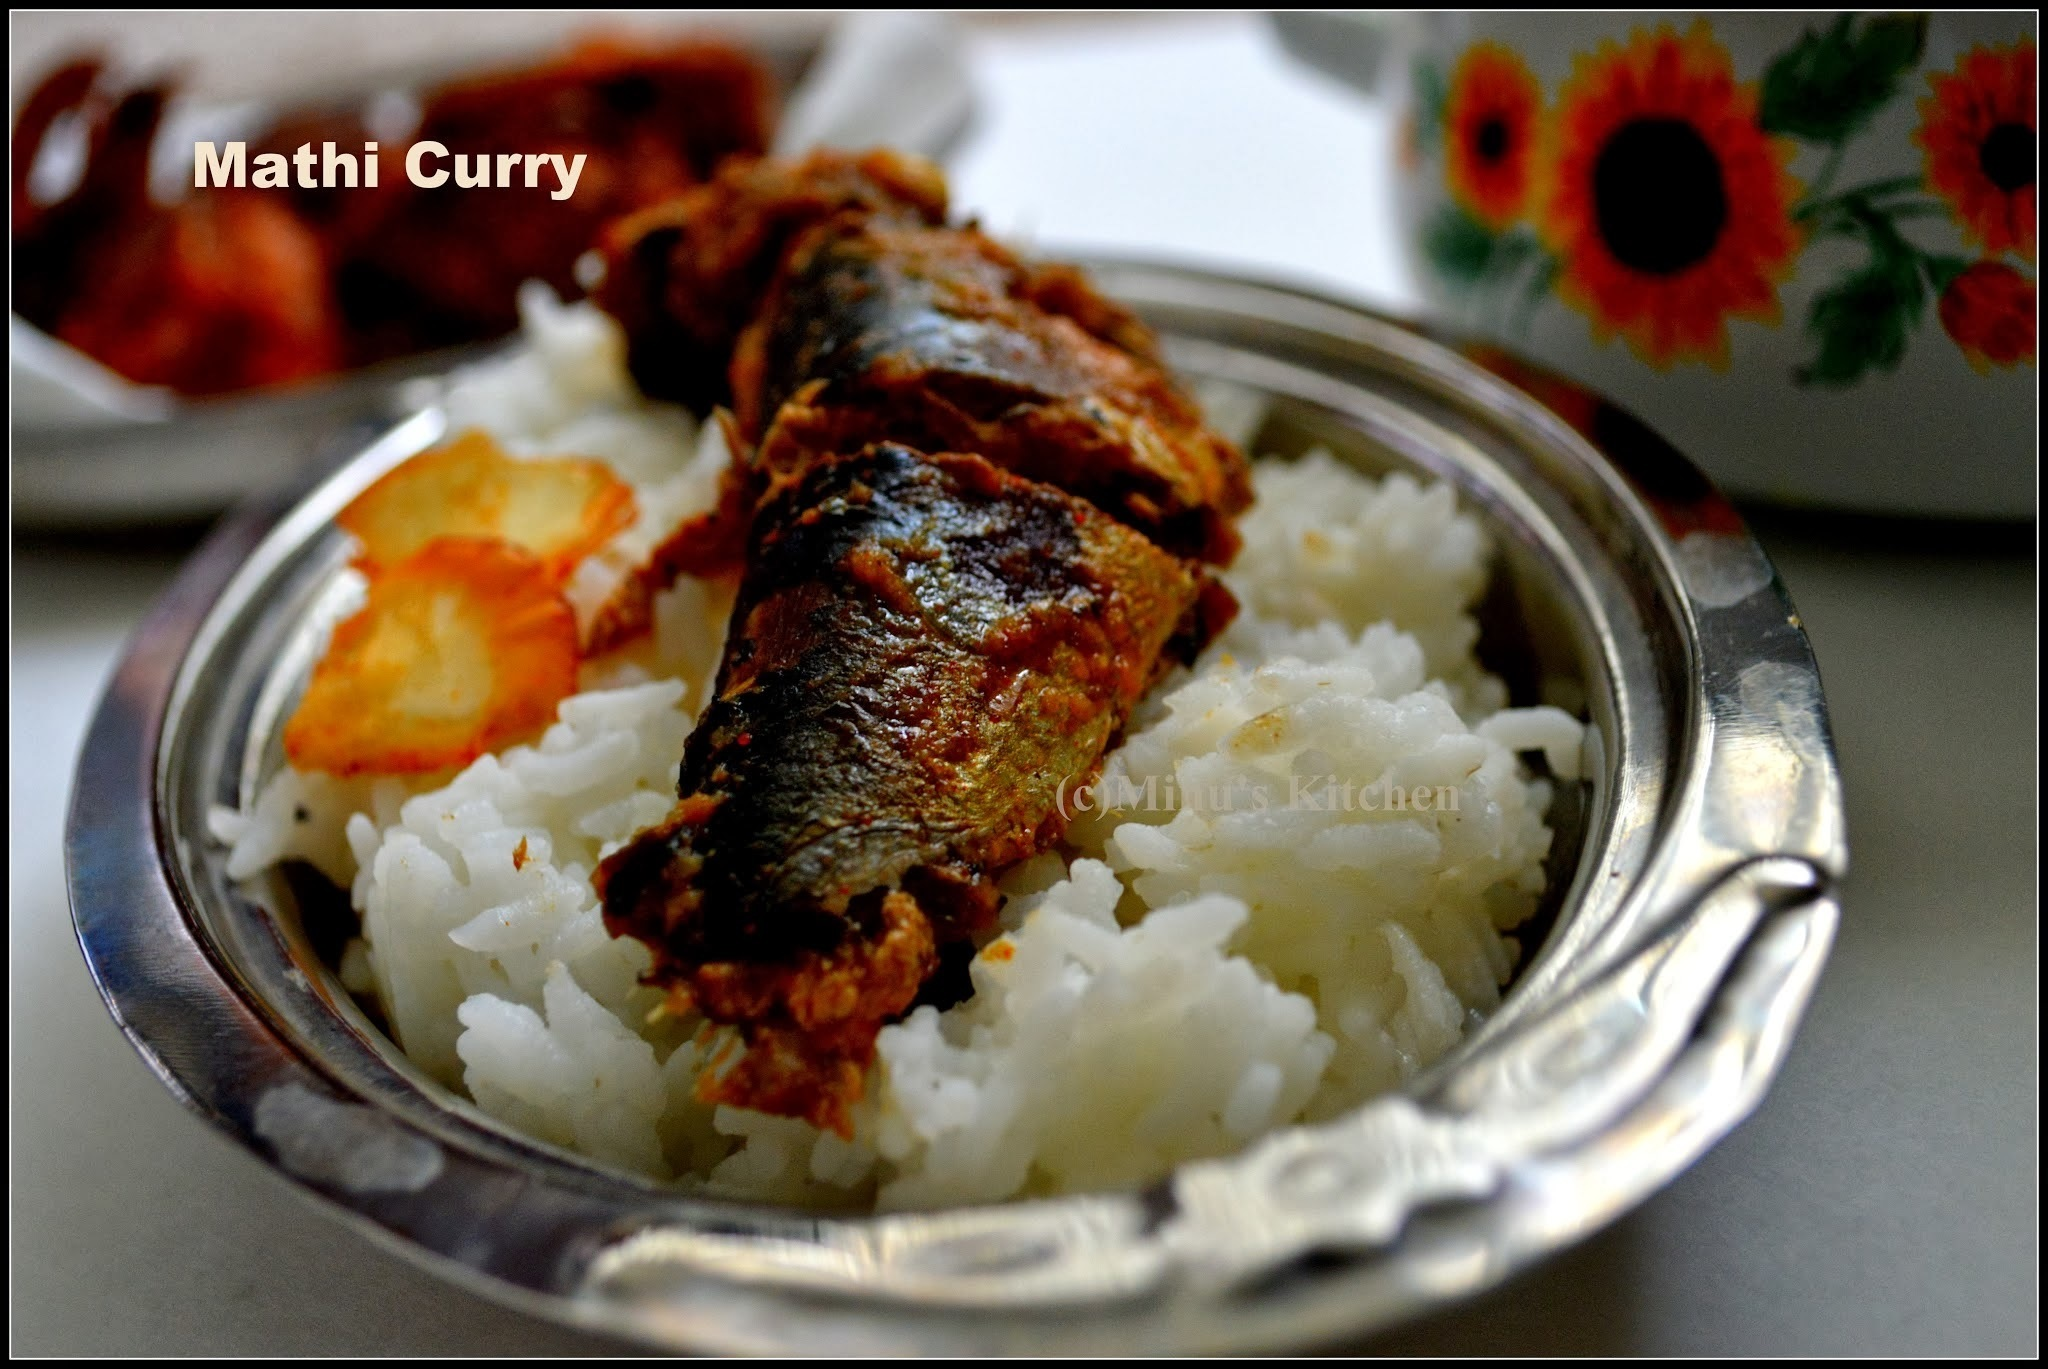 Nadan Mathi Curry: Sardines Curry - Traditional Sardines Curry